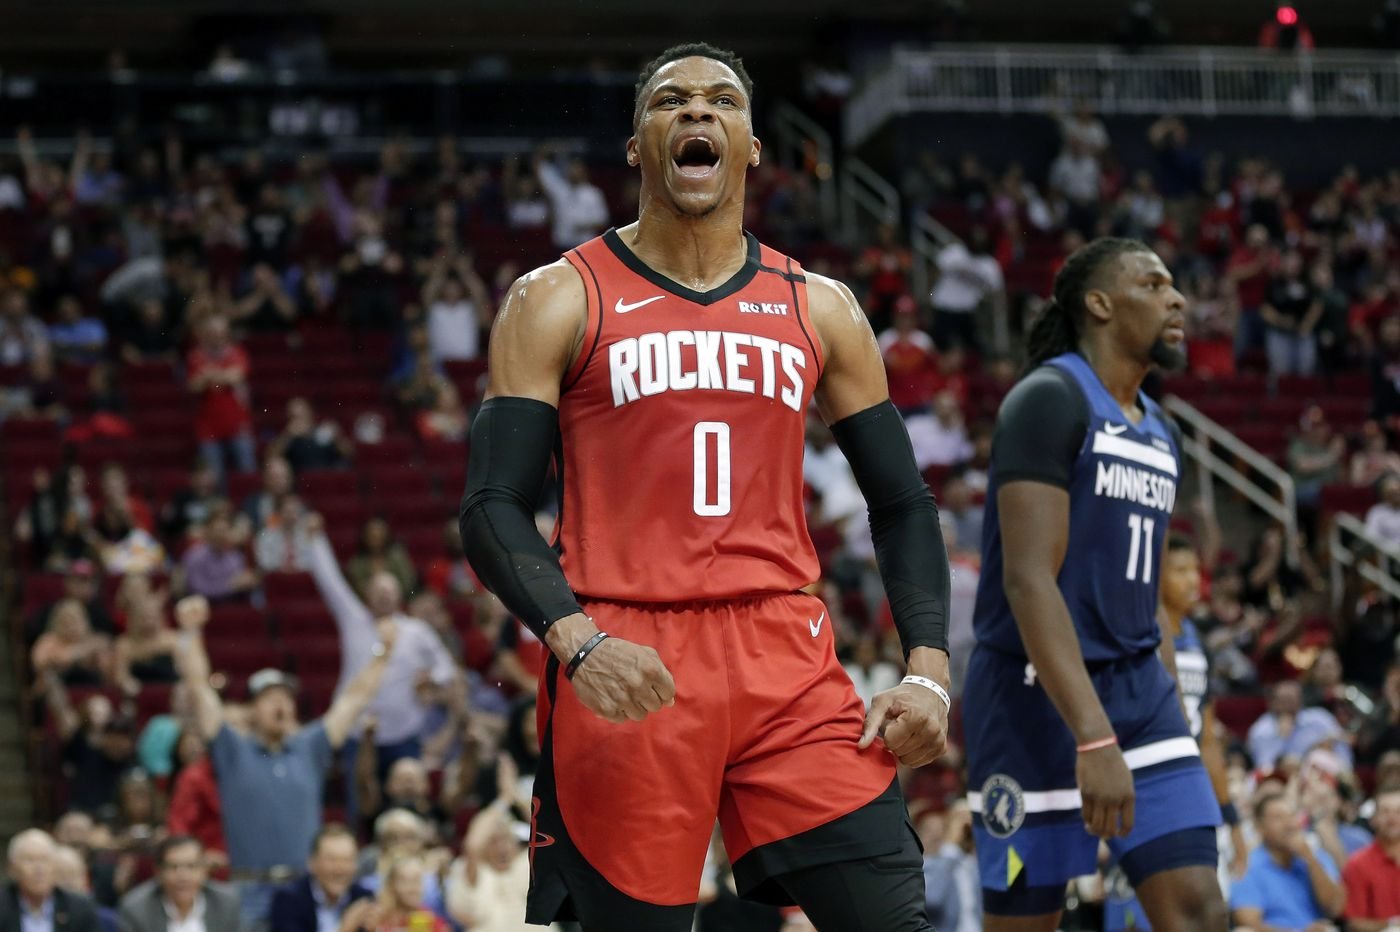 Russell Westbrook tests positive for COVID-19, Atlanta Braves looking into tomahawk chop, and other sports news